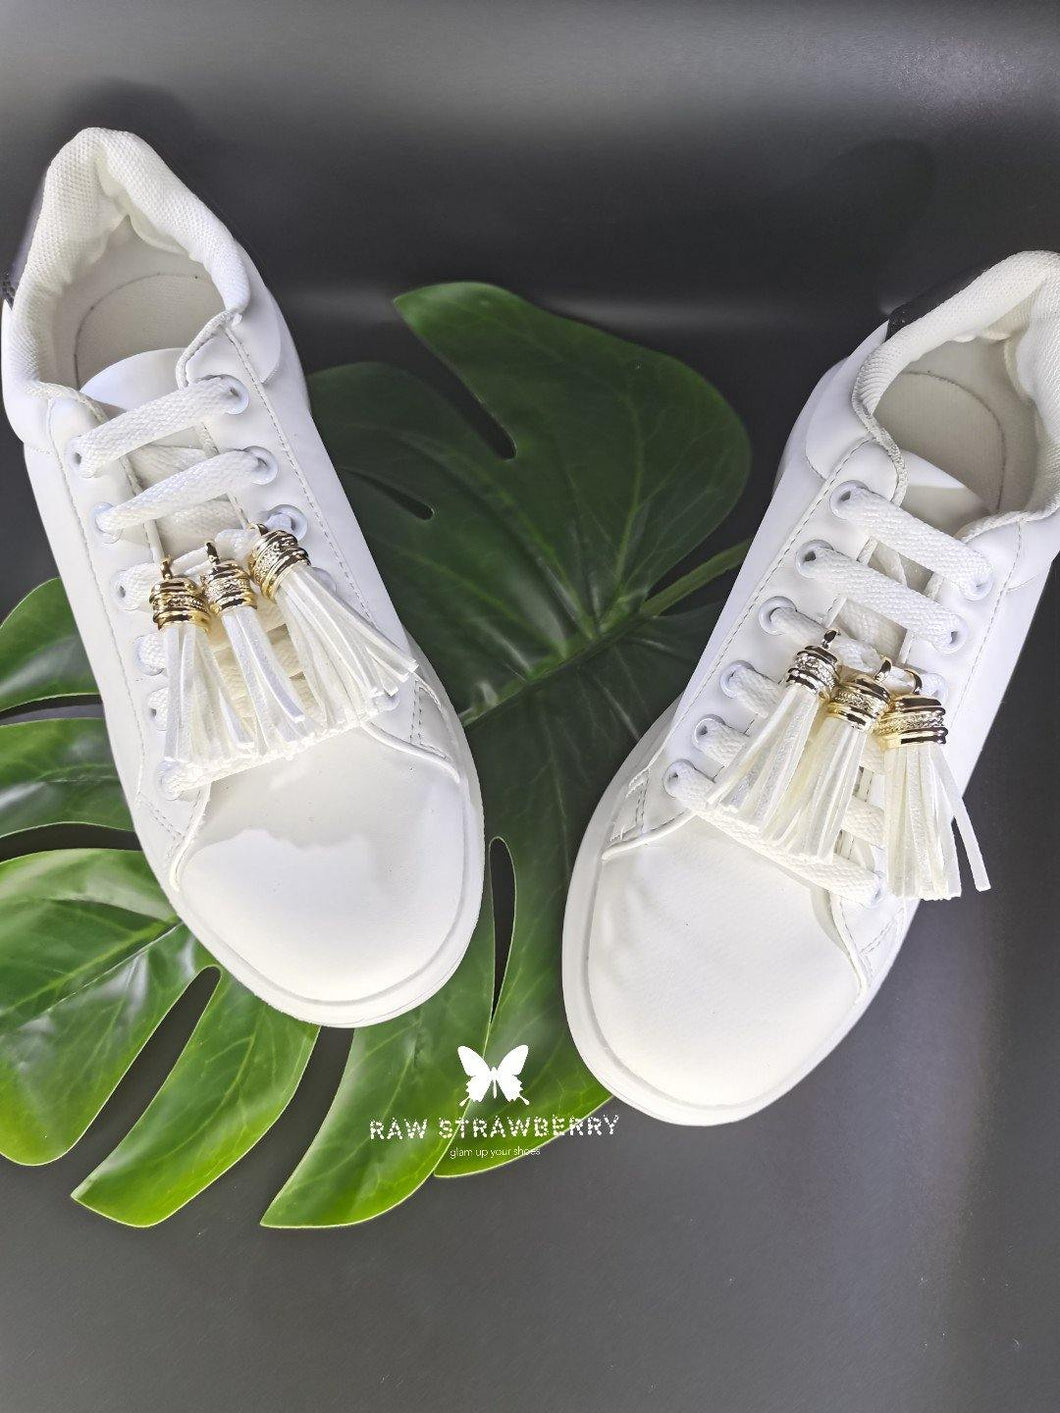 white sneaker tassels (6 pieces) - Raw Strawberry